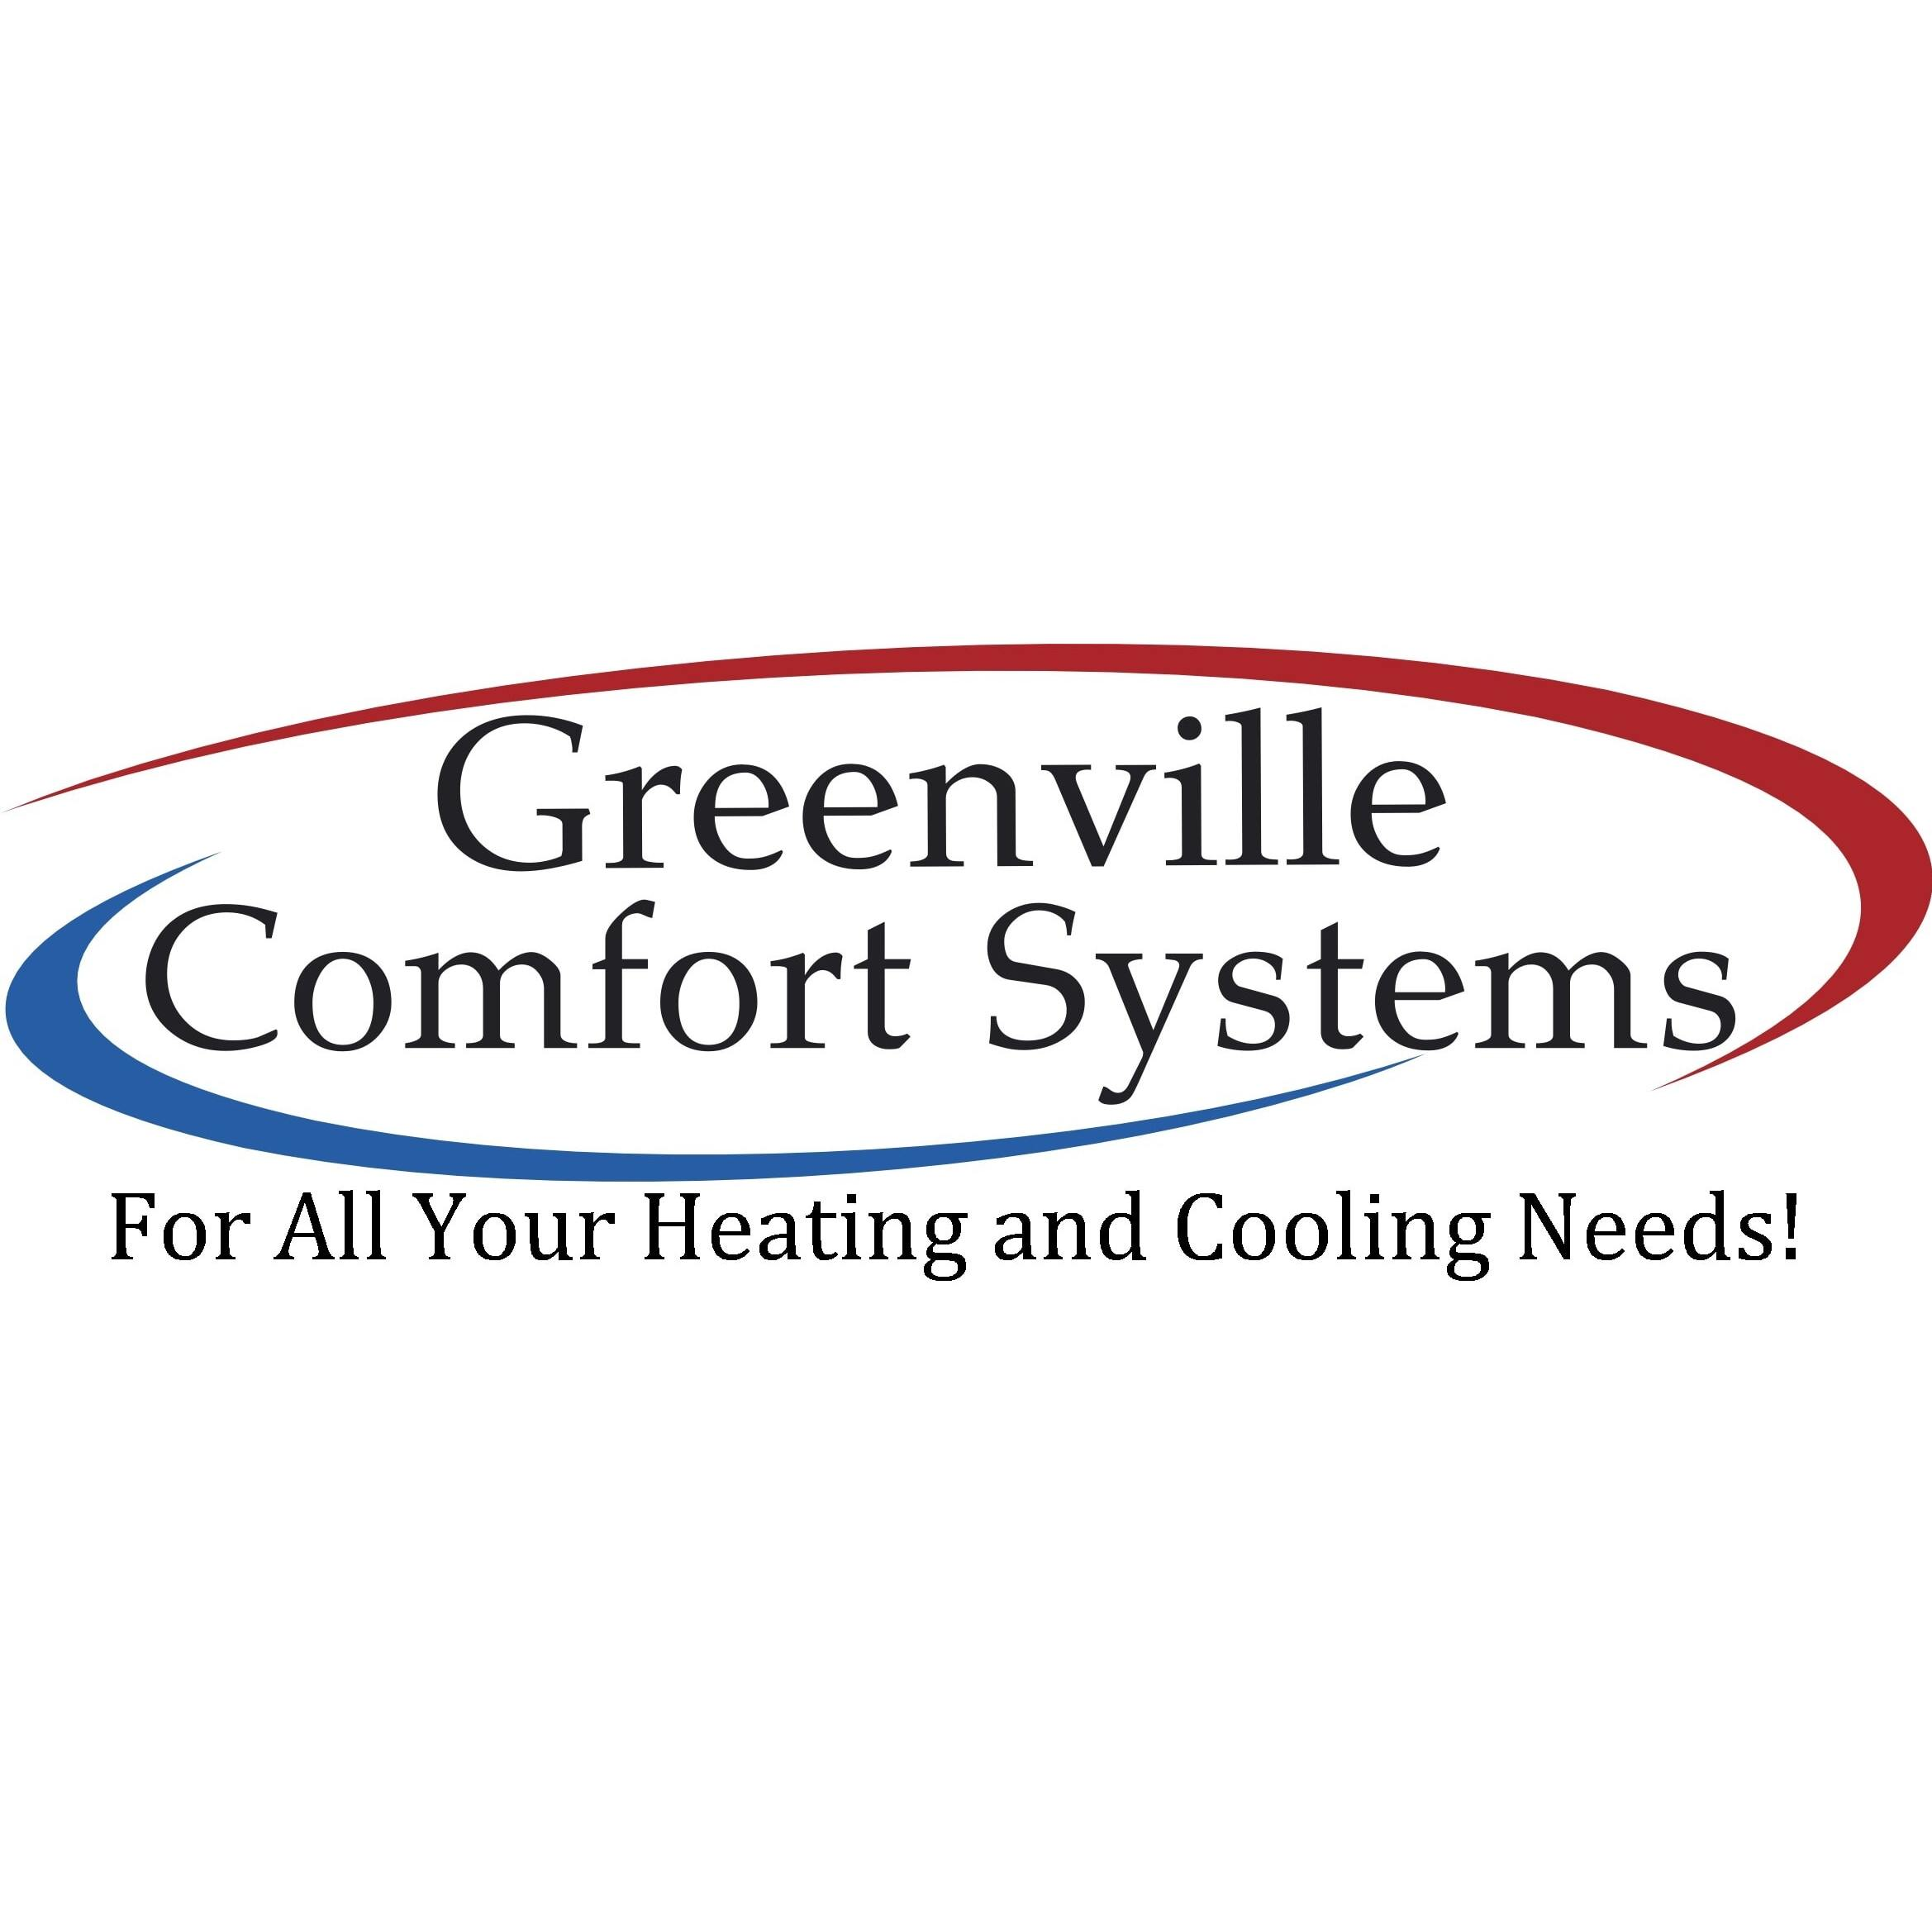 Greenville Comfort Systems